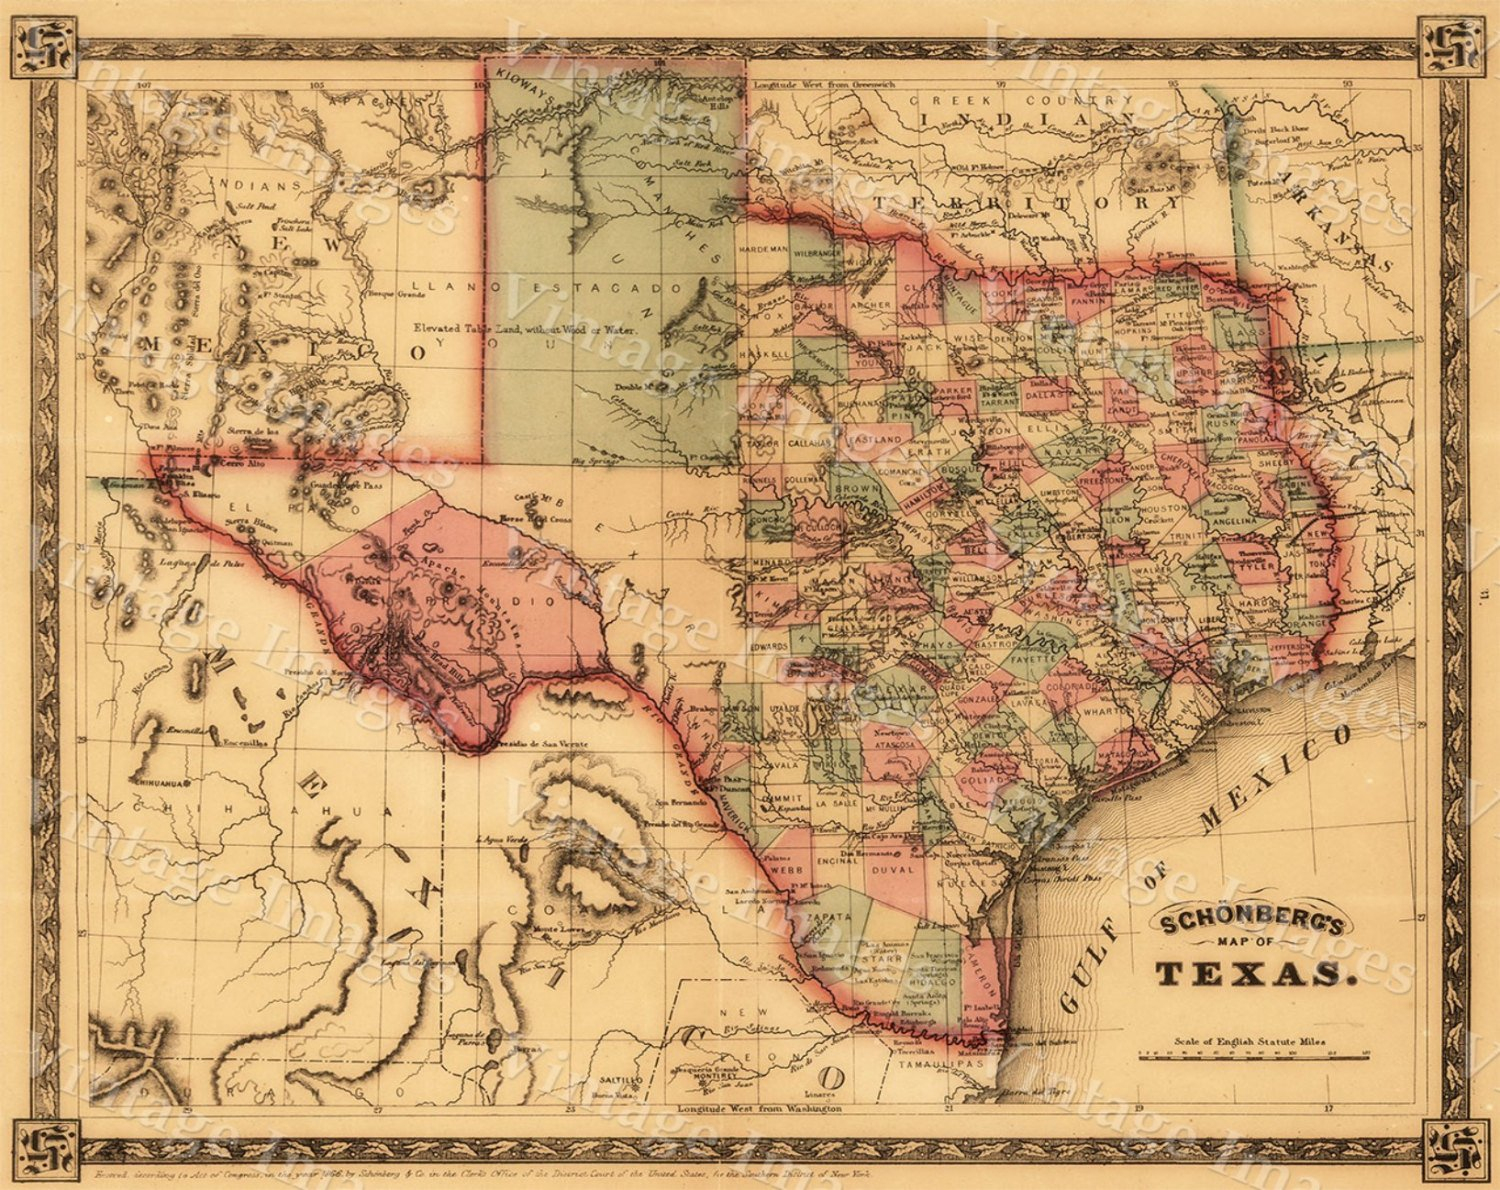 Texas Map Giant 1866 Old Texas Map Old West Map Antique | Etsy - Old Texas Maps For Sale